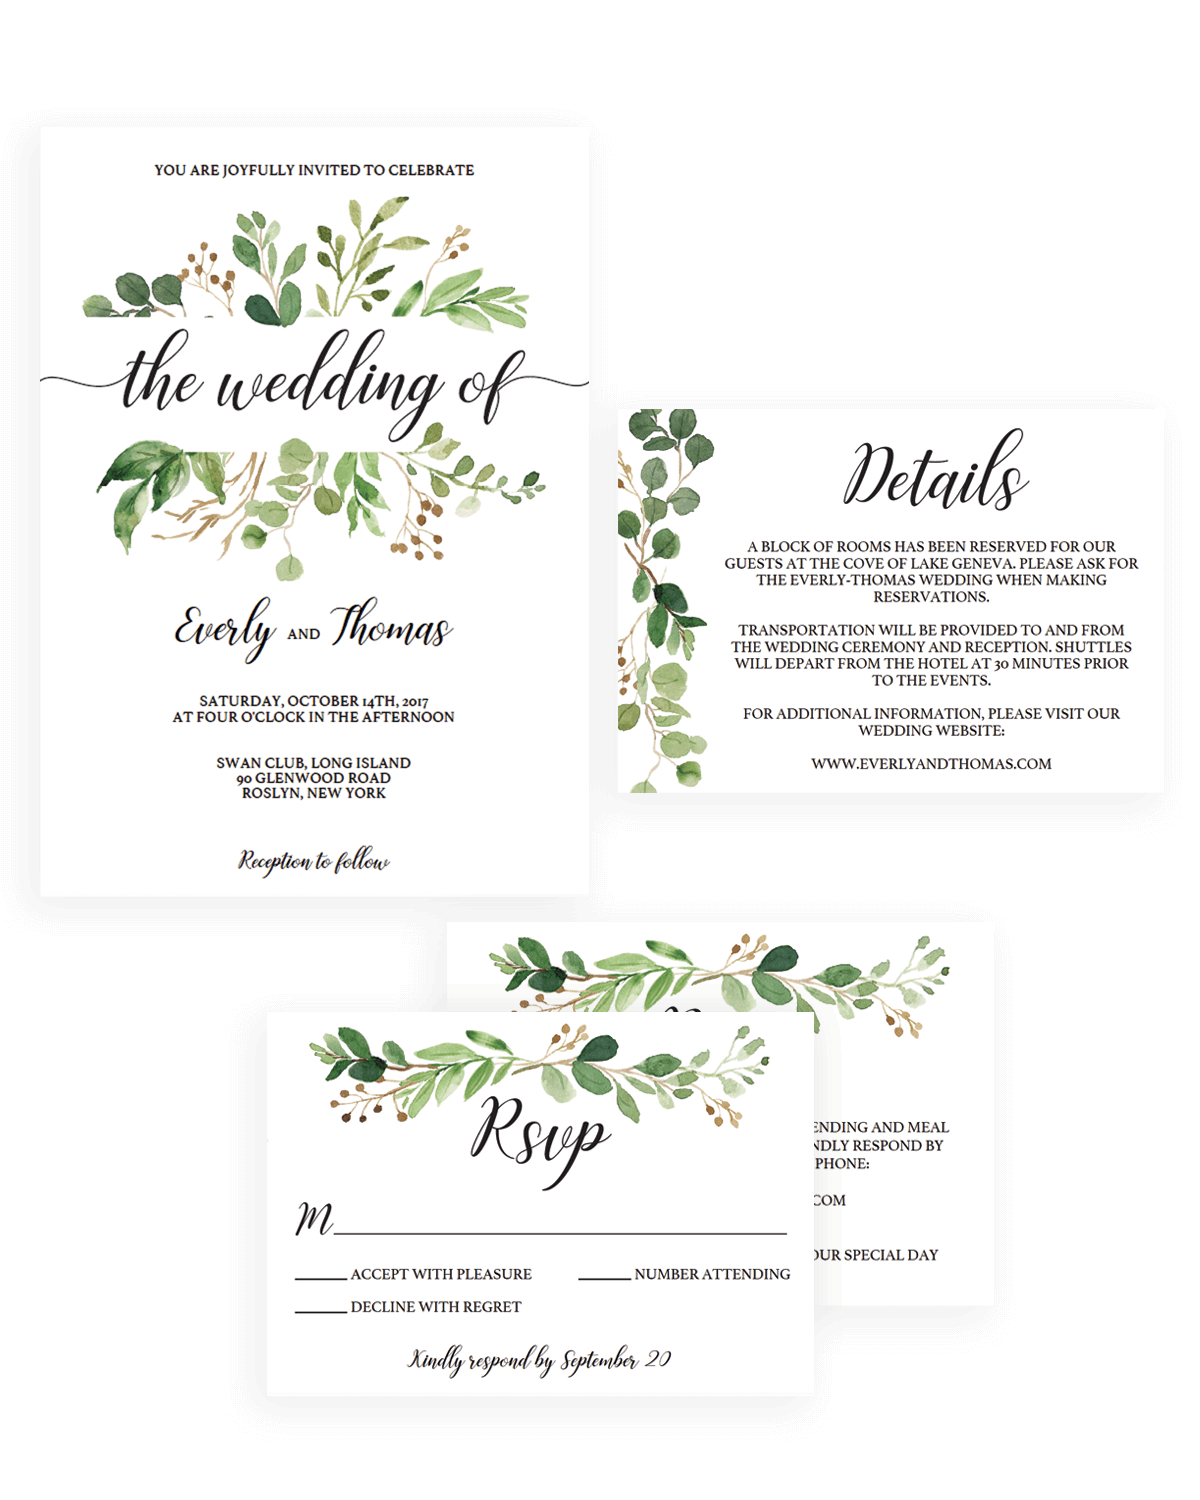 Watercolor Leaves Wedding Invitation Kit Template Download By Papersizzle  Invitation Information Template